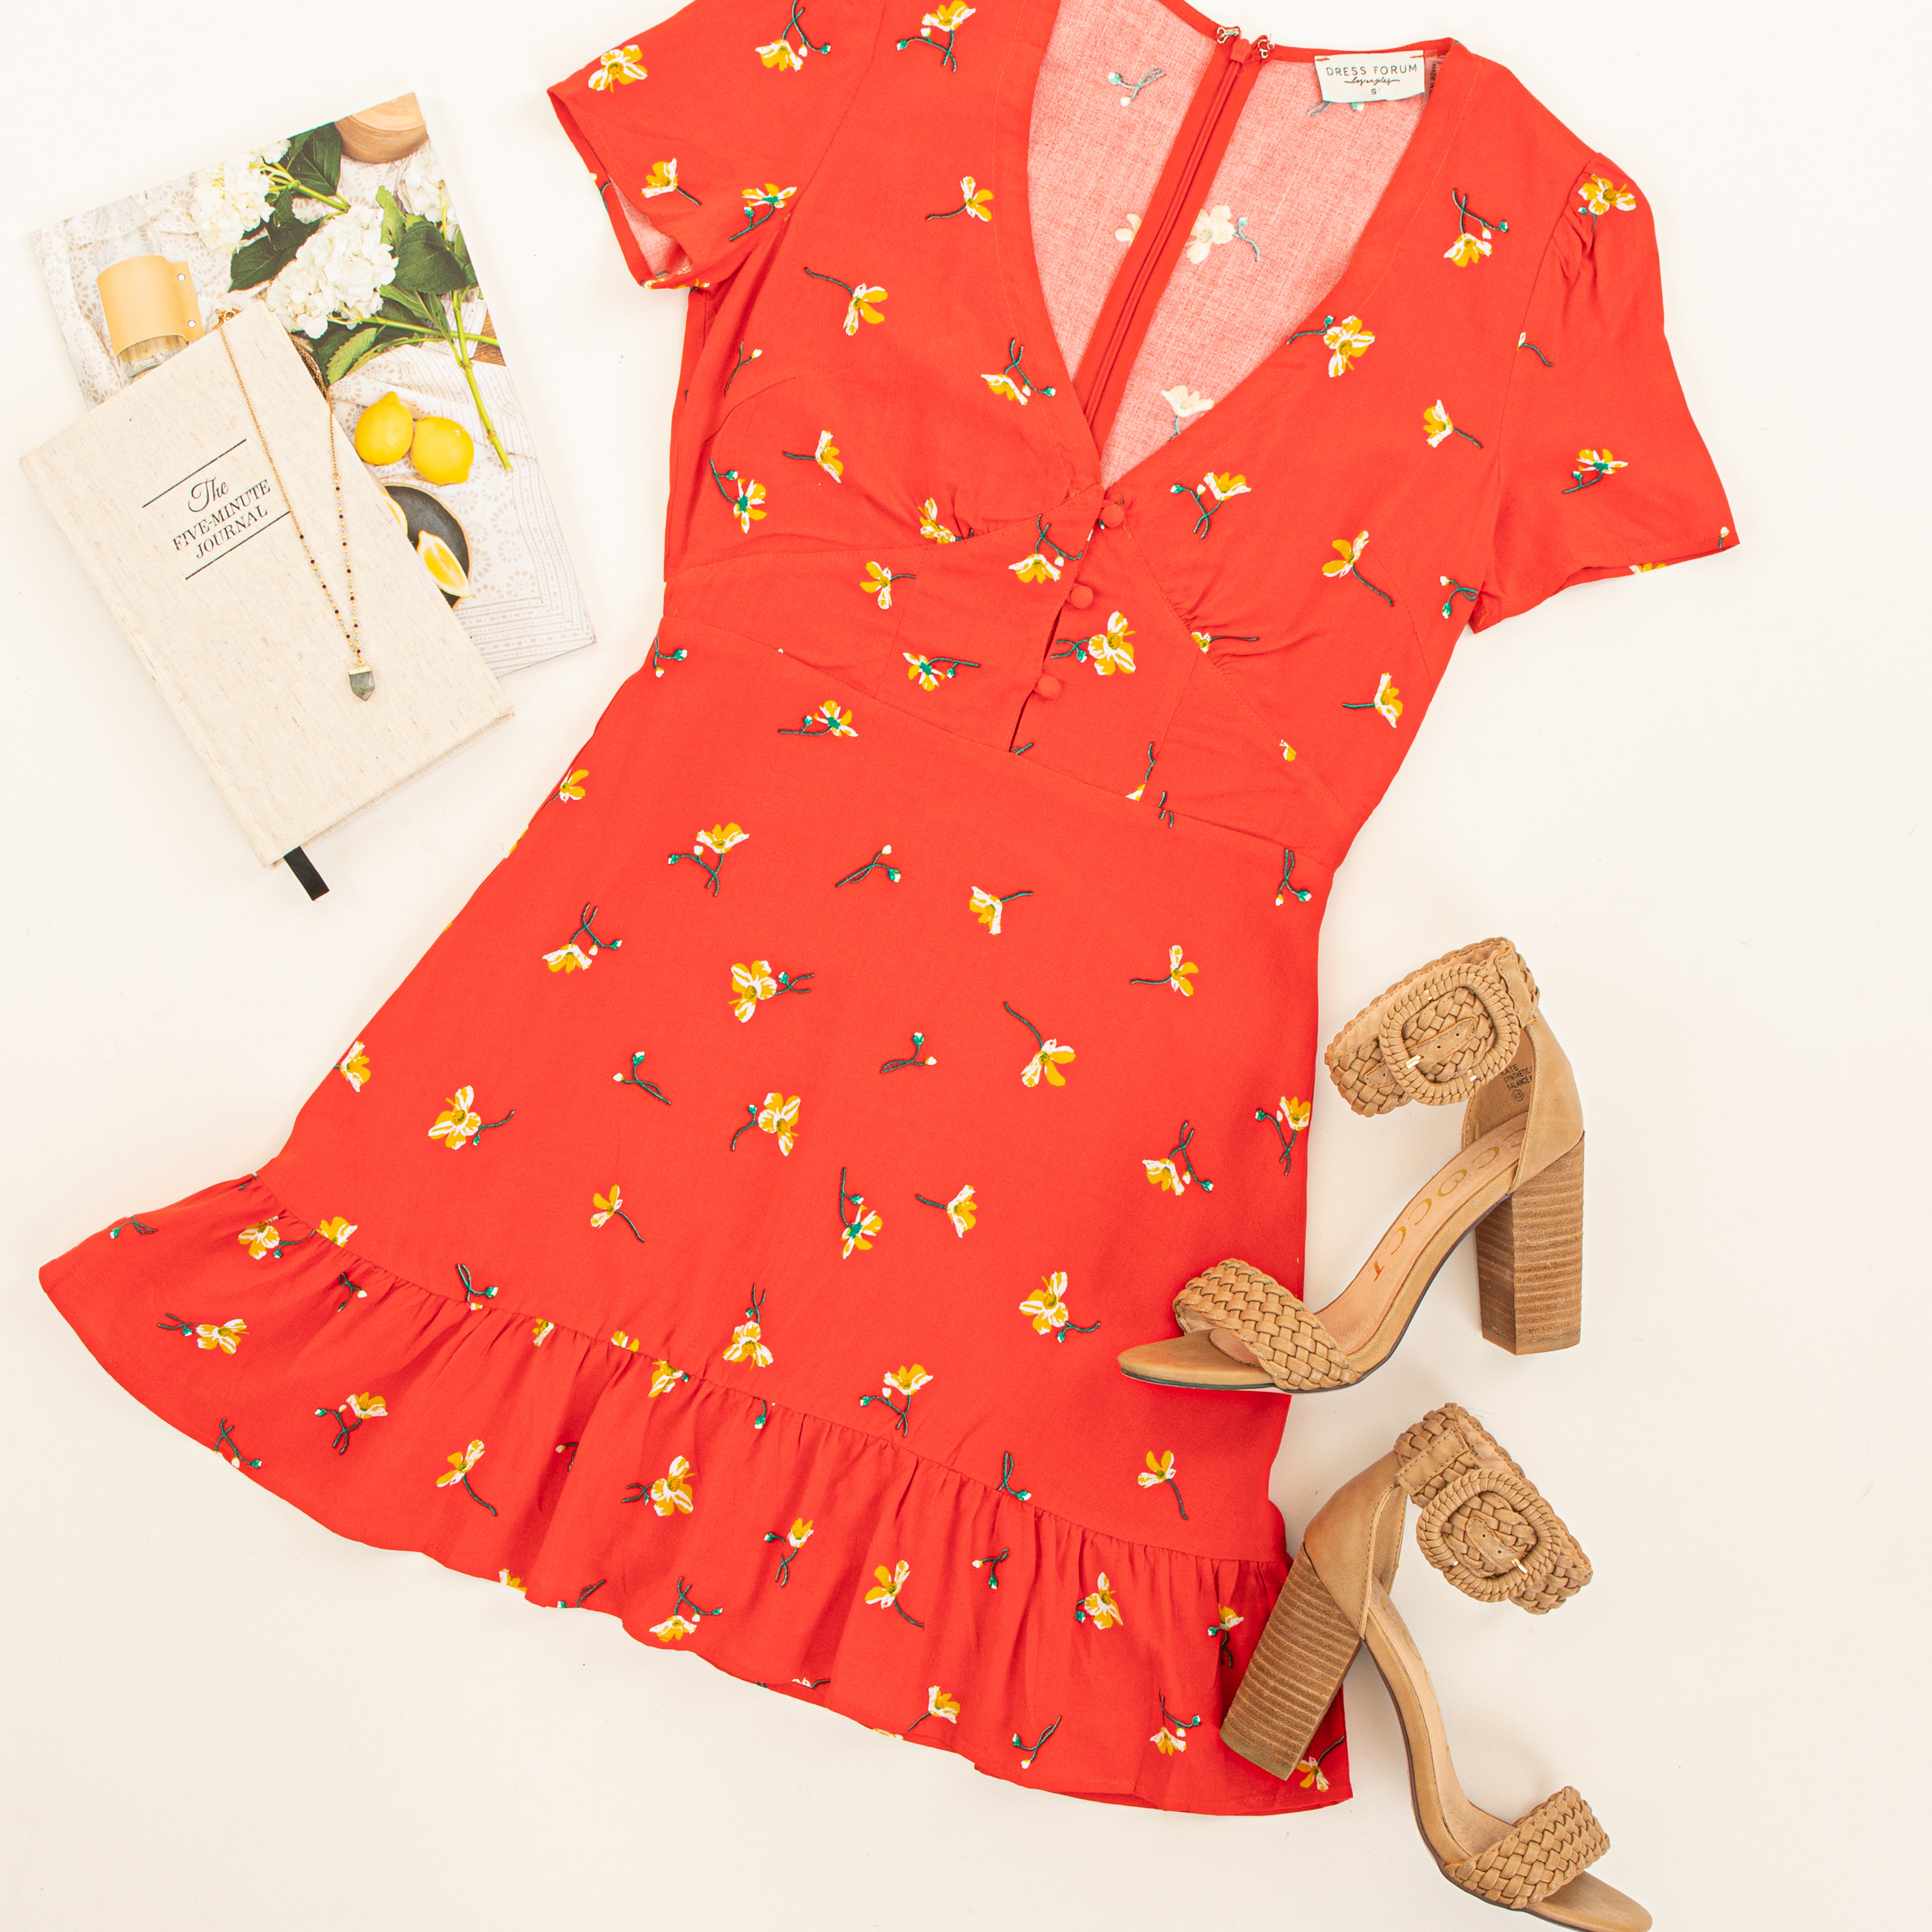 Red Floral Mini Dress with Ruffled Hemline and Buttons